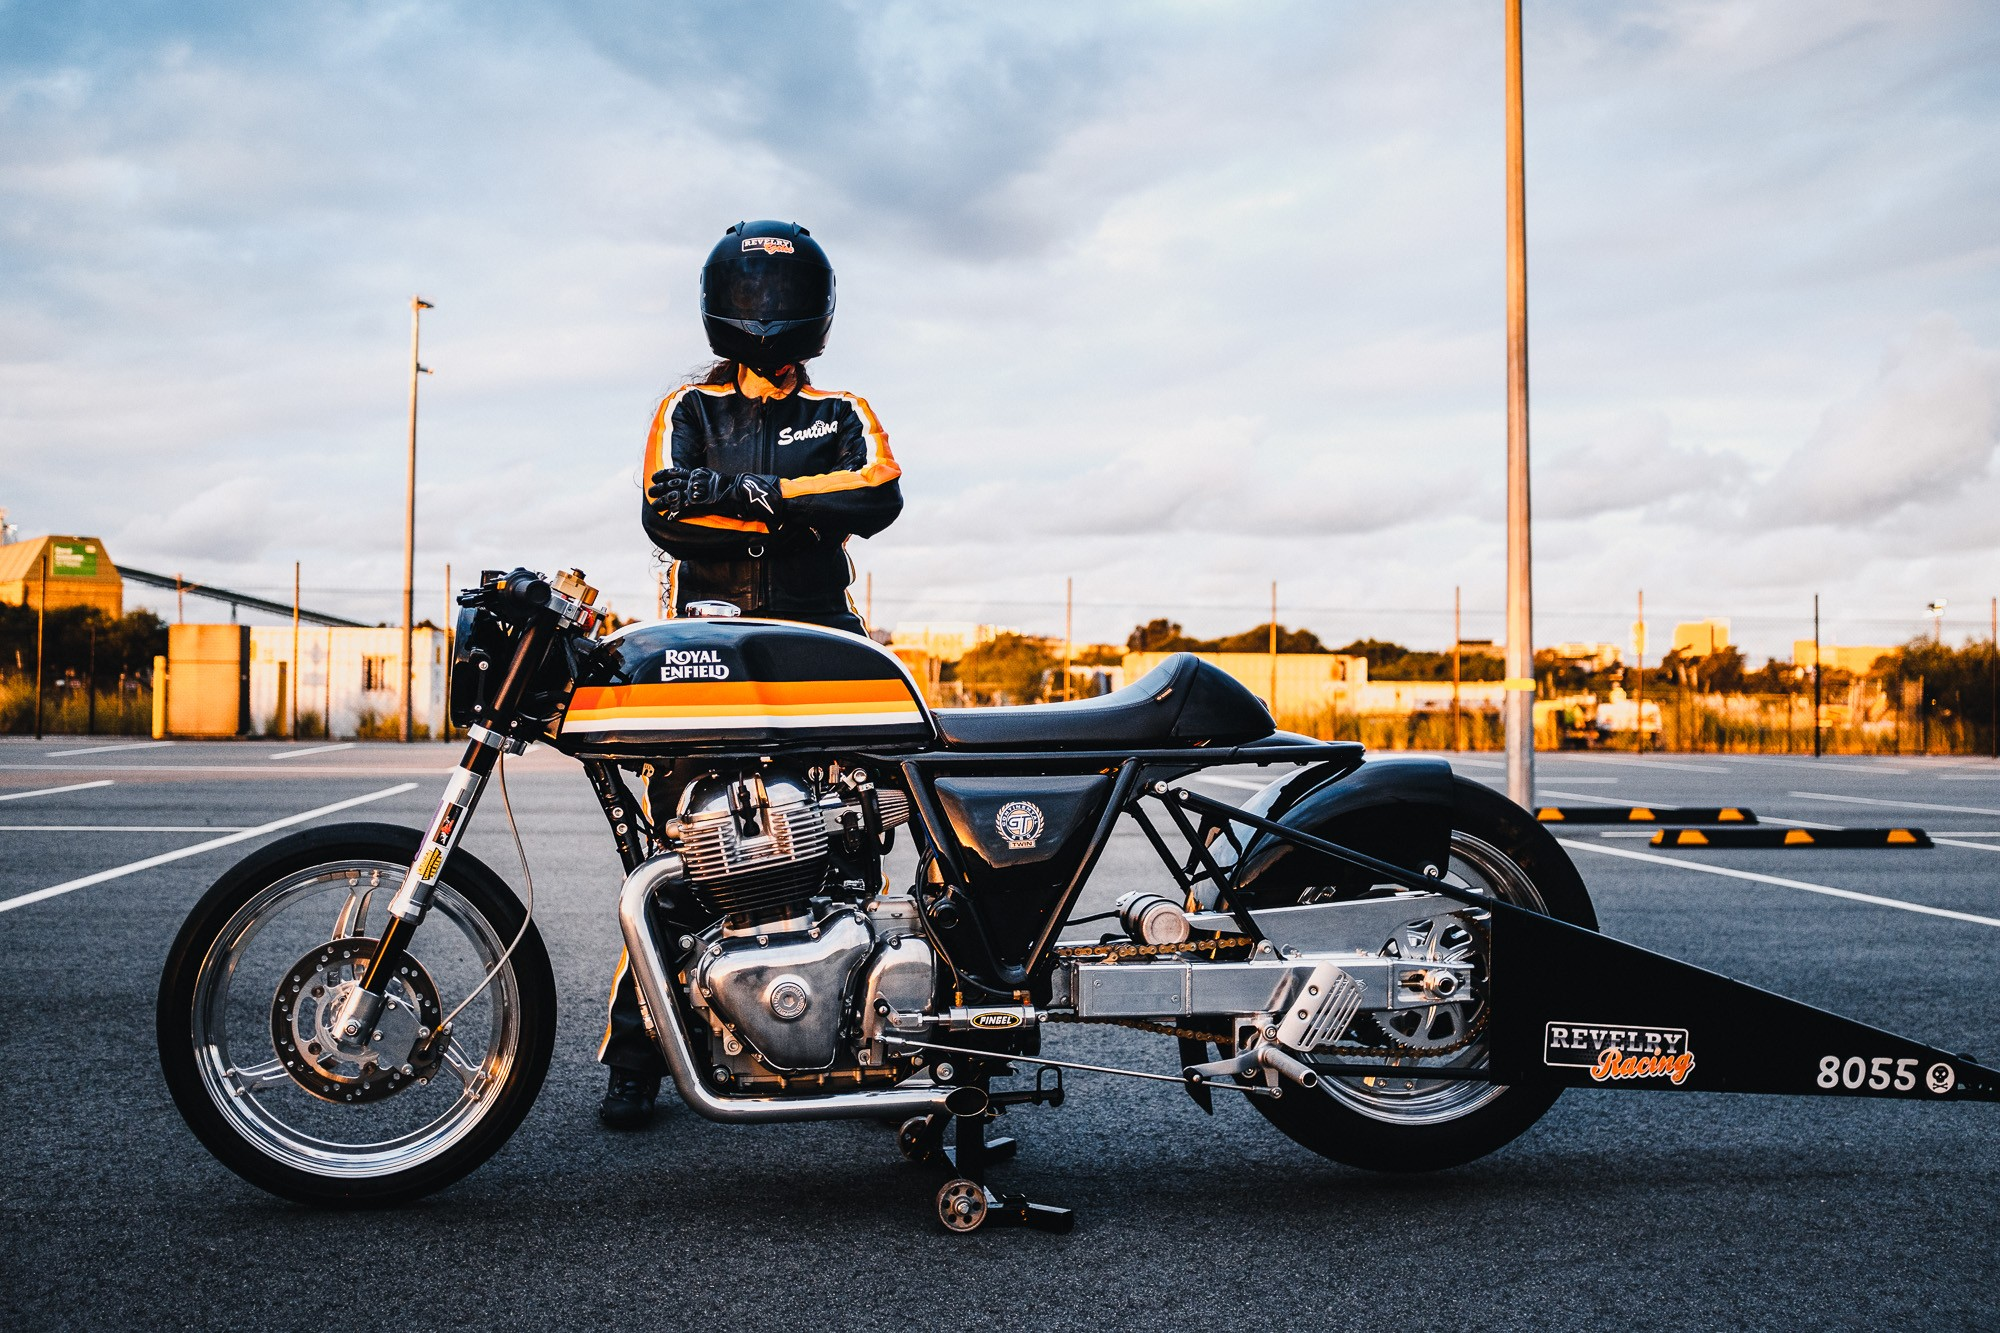 Santina Keith from Sydney's Revelry Racing and her Royal Enfield drag bike